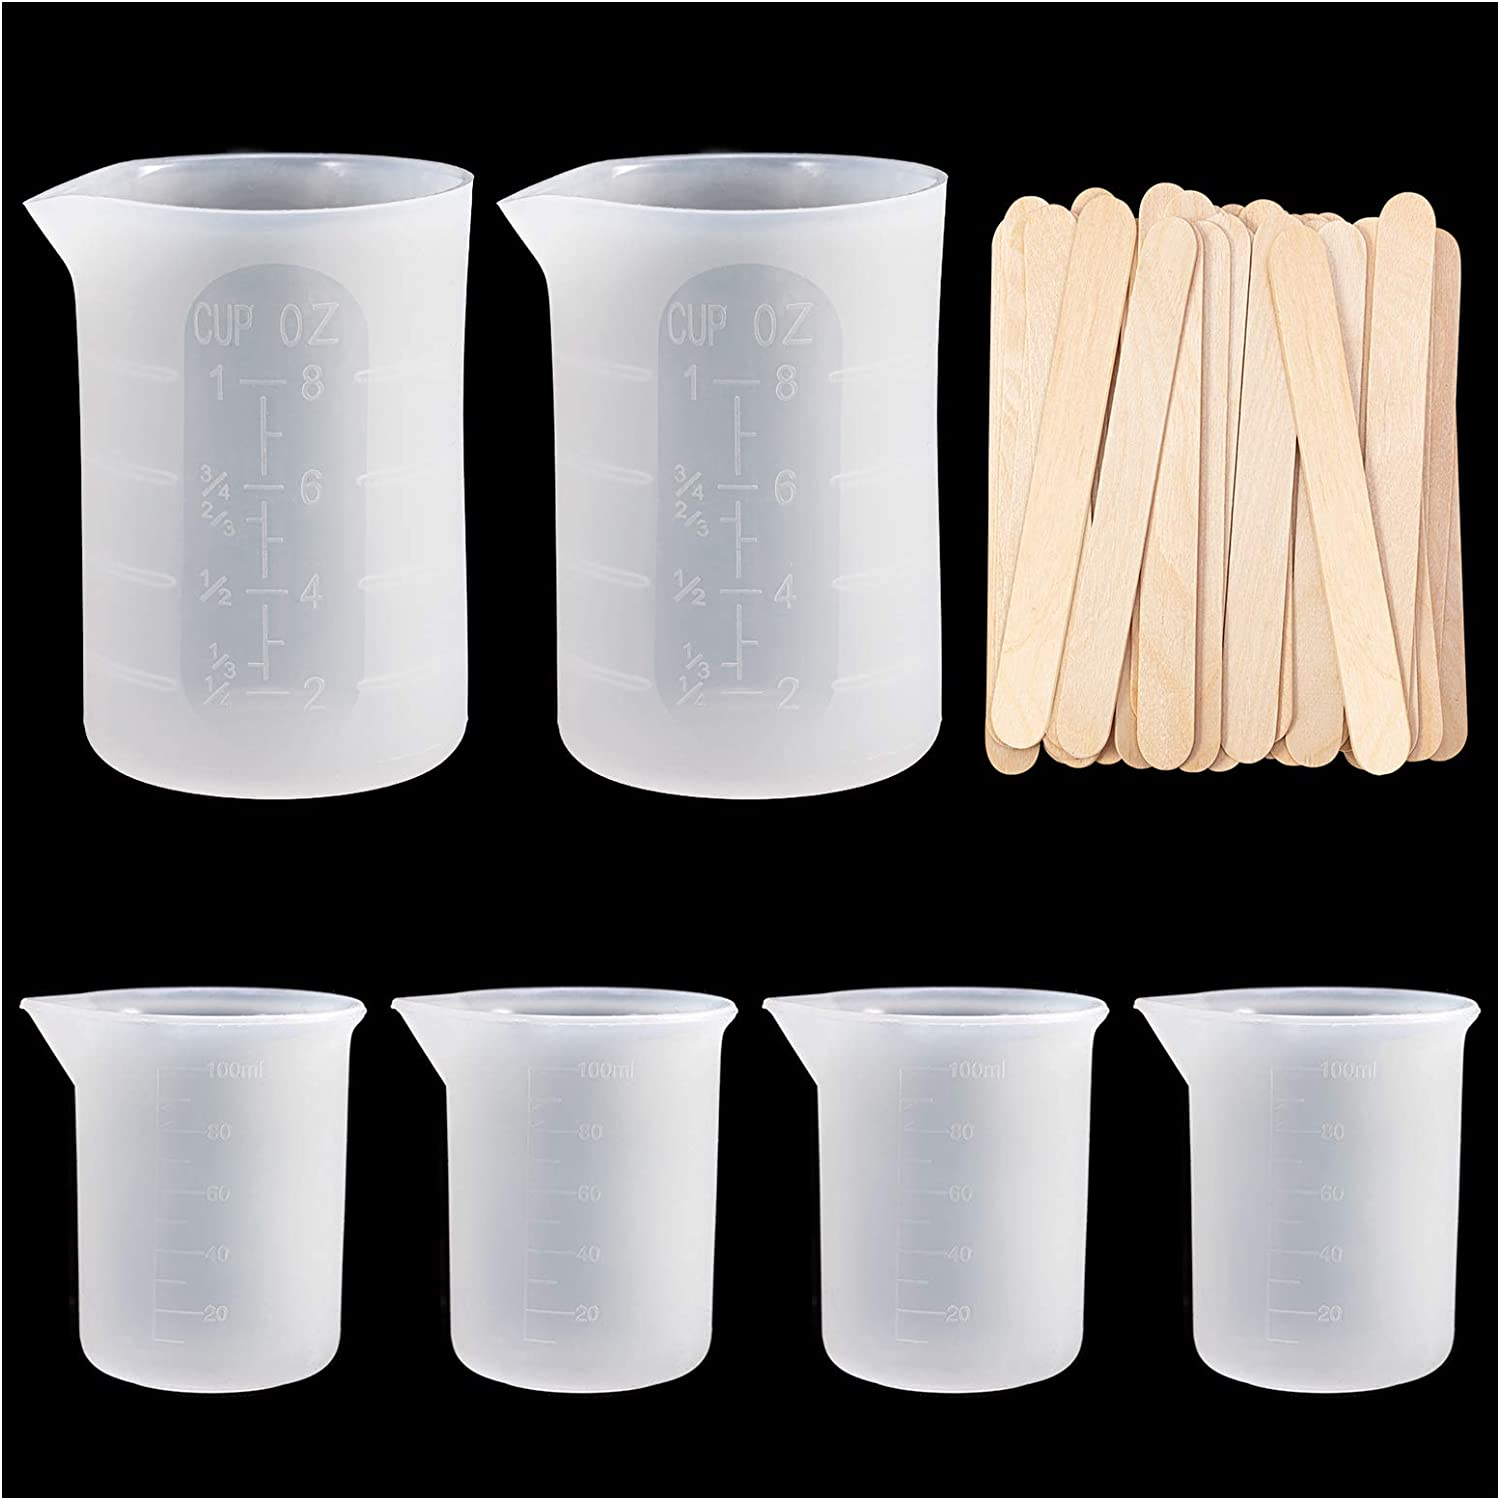 Silicone Measuring Cups for Resin, Resin Mixing Cups, Epoxy Measuring Cups with Wooden Stirrers for Jewelry Casting Molds, Epoxy DIY Crafts Tools